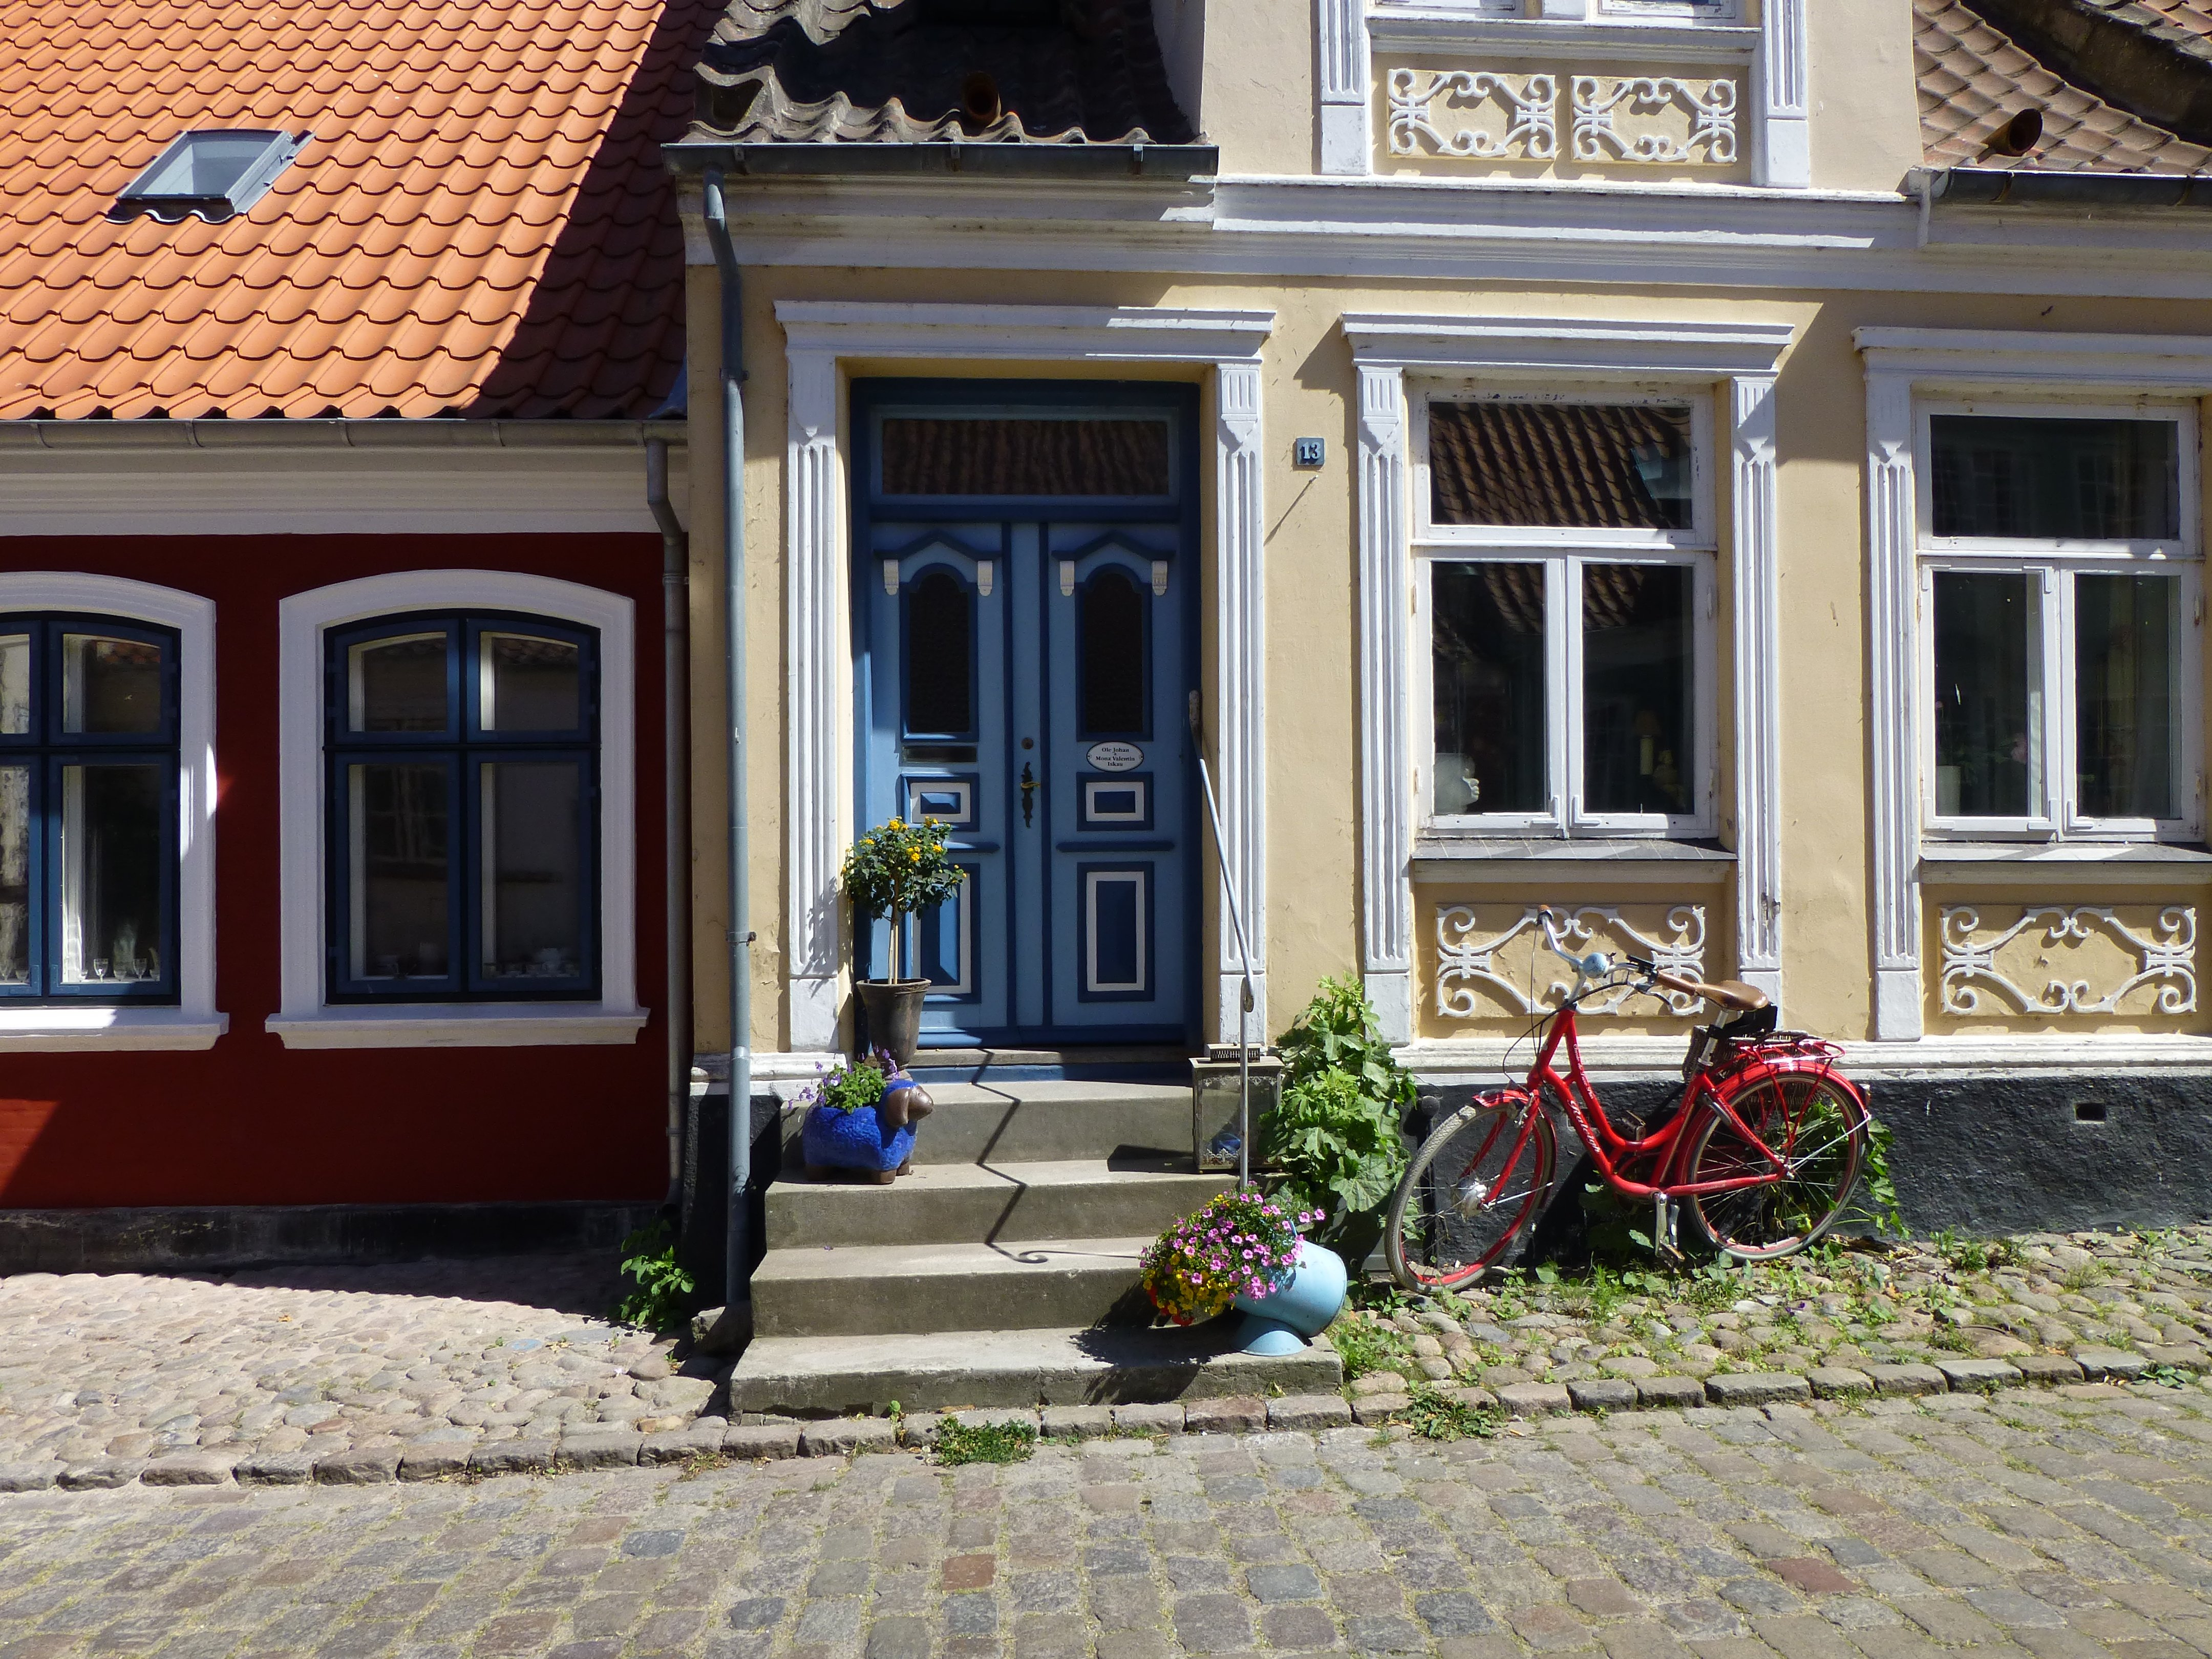 Charming houses on island of Ærø